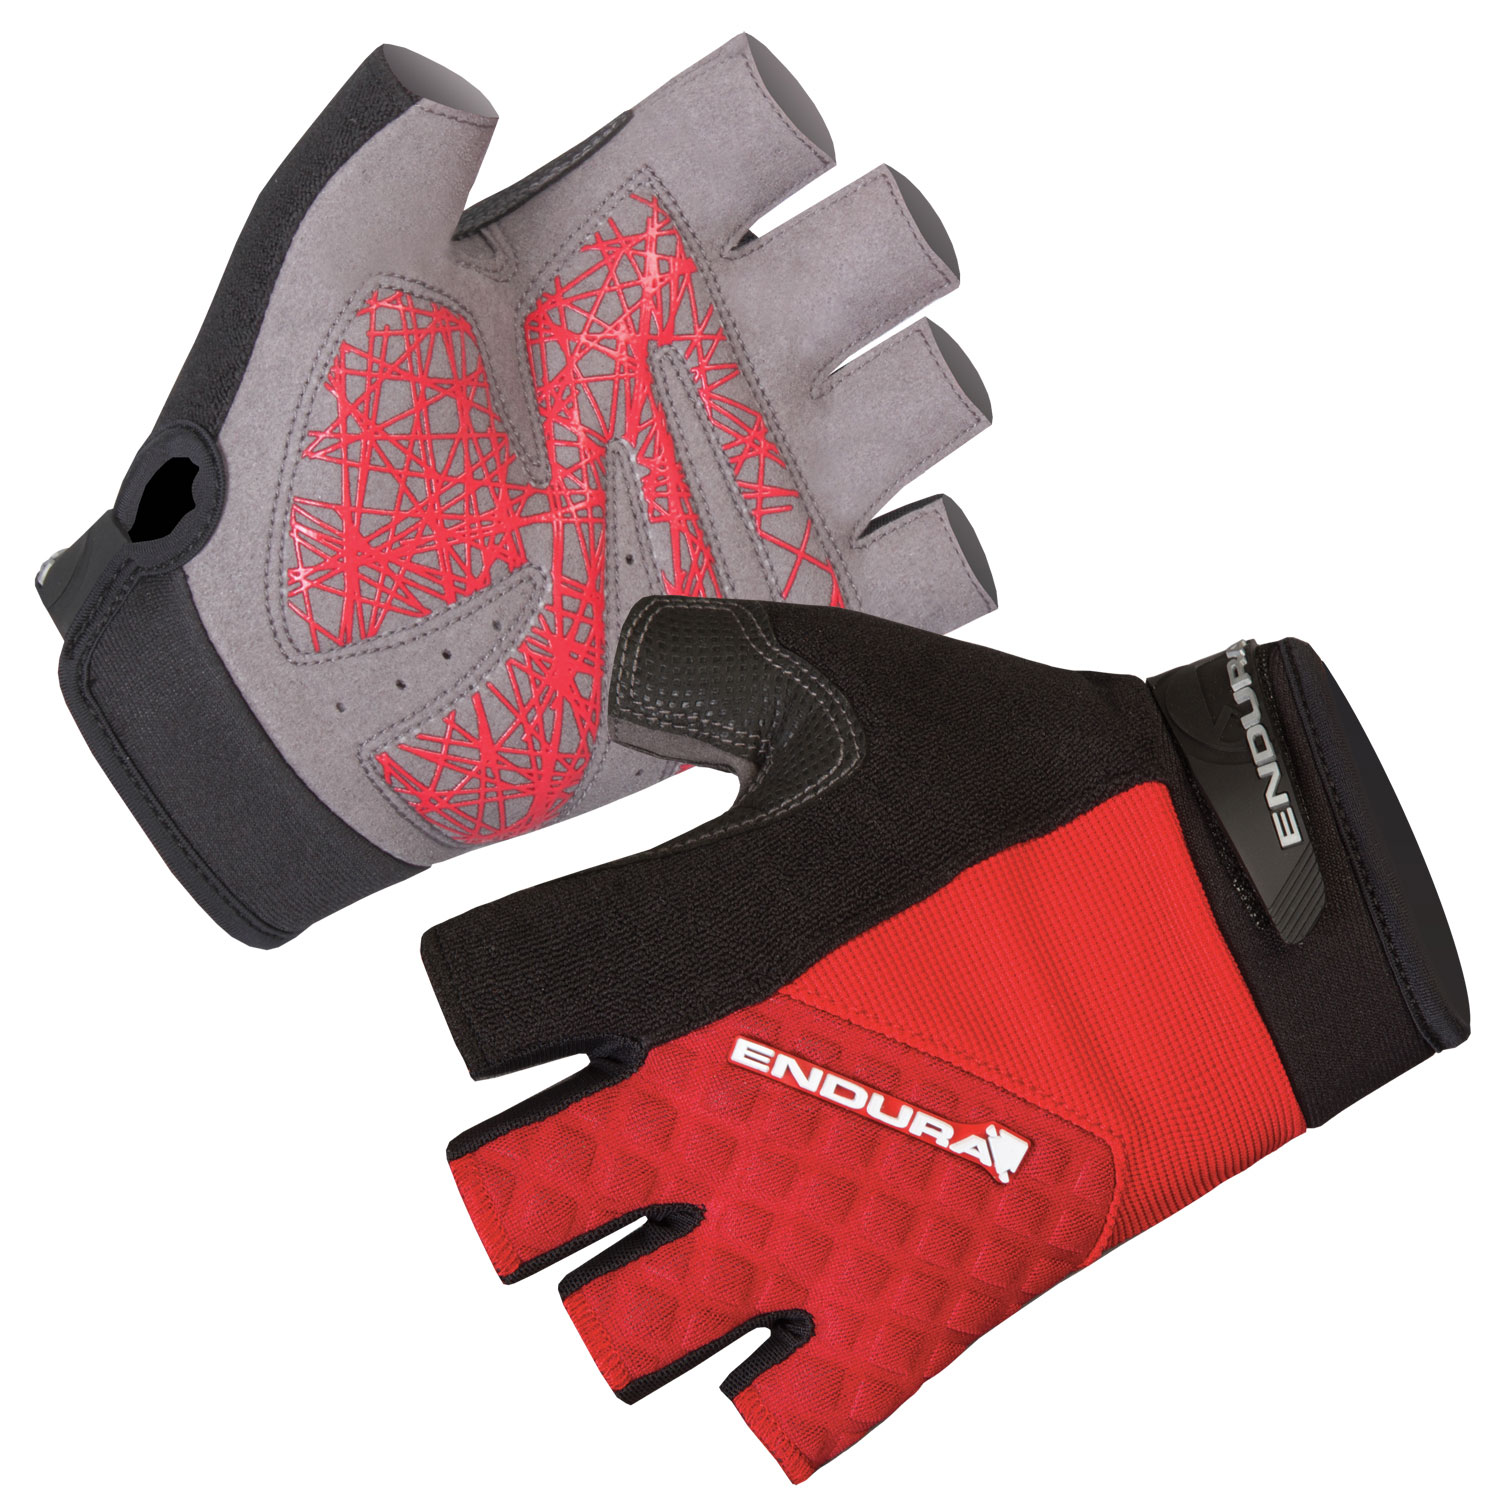 Hummvee Plus Mitt Red